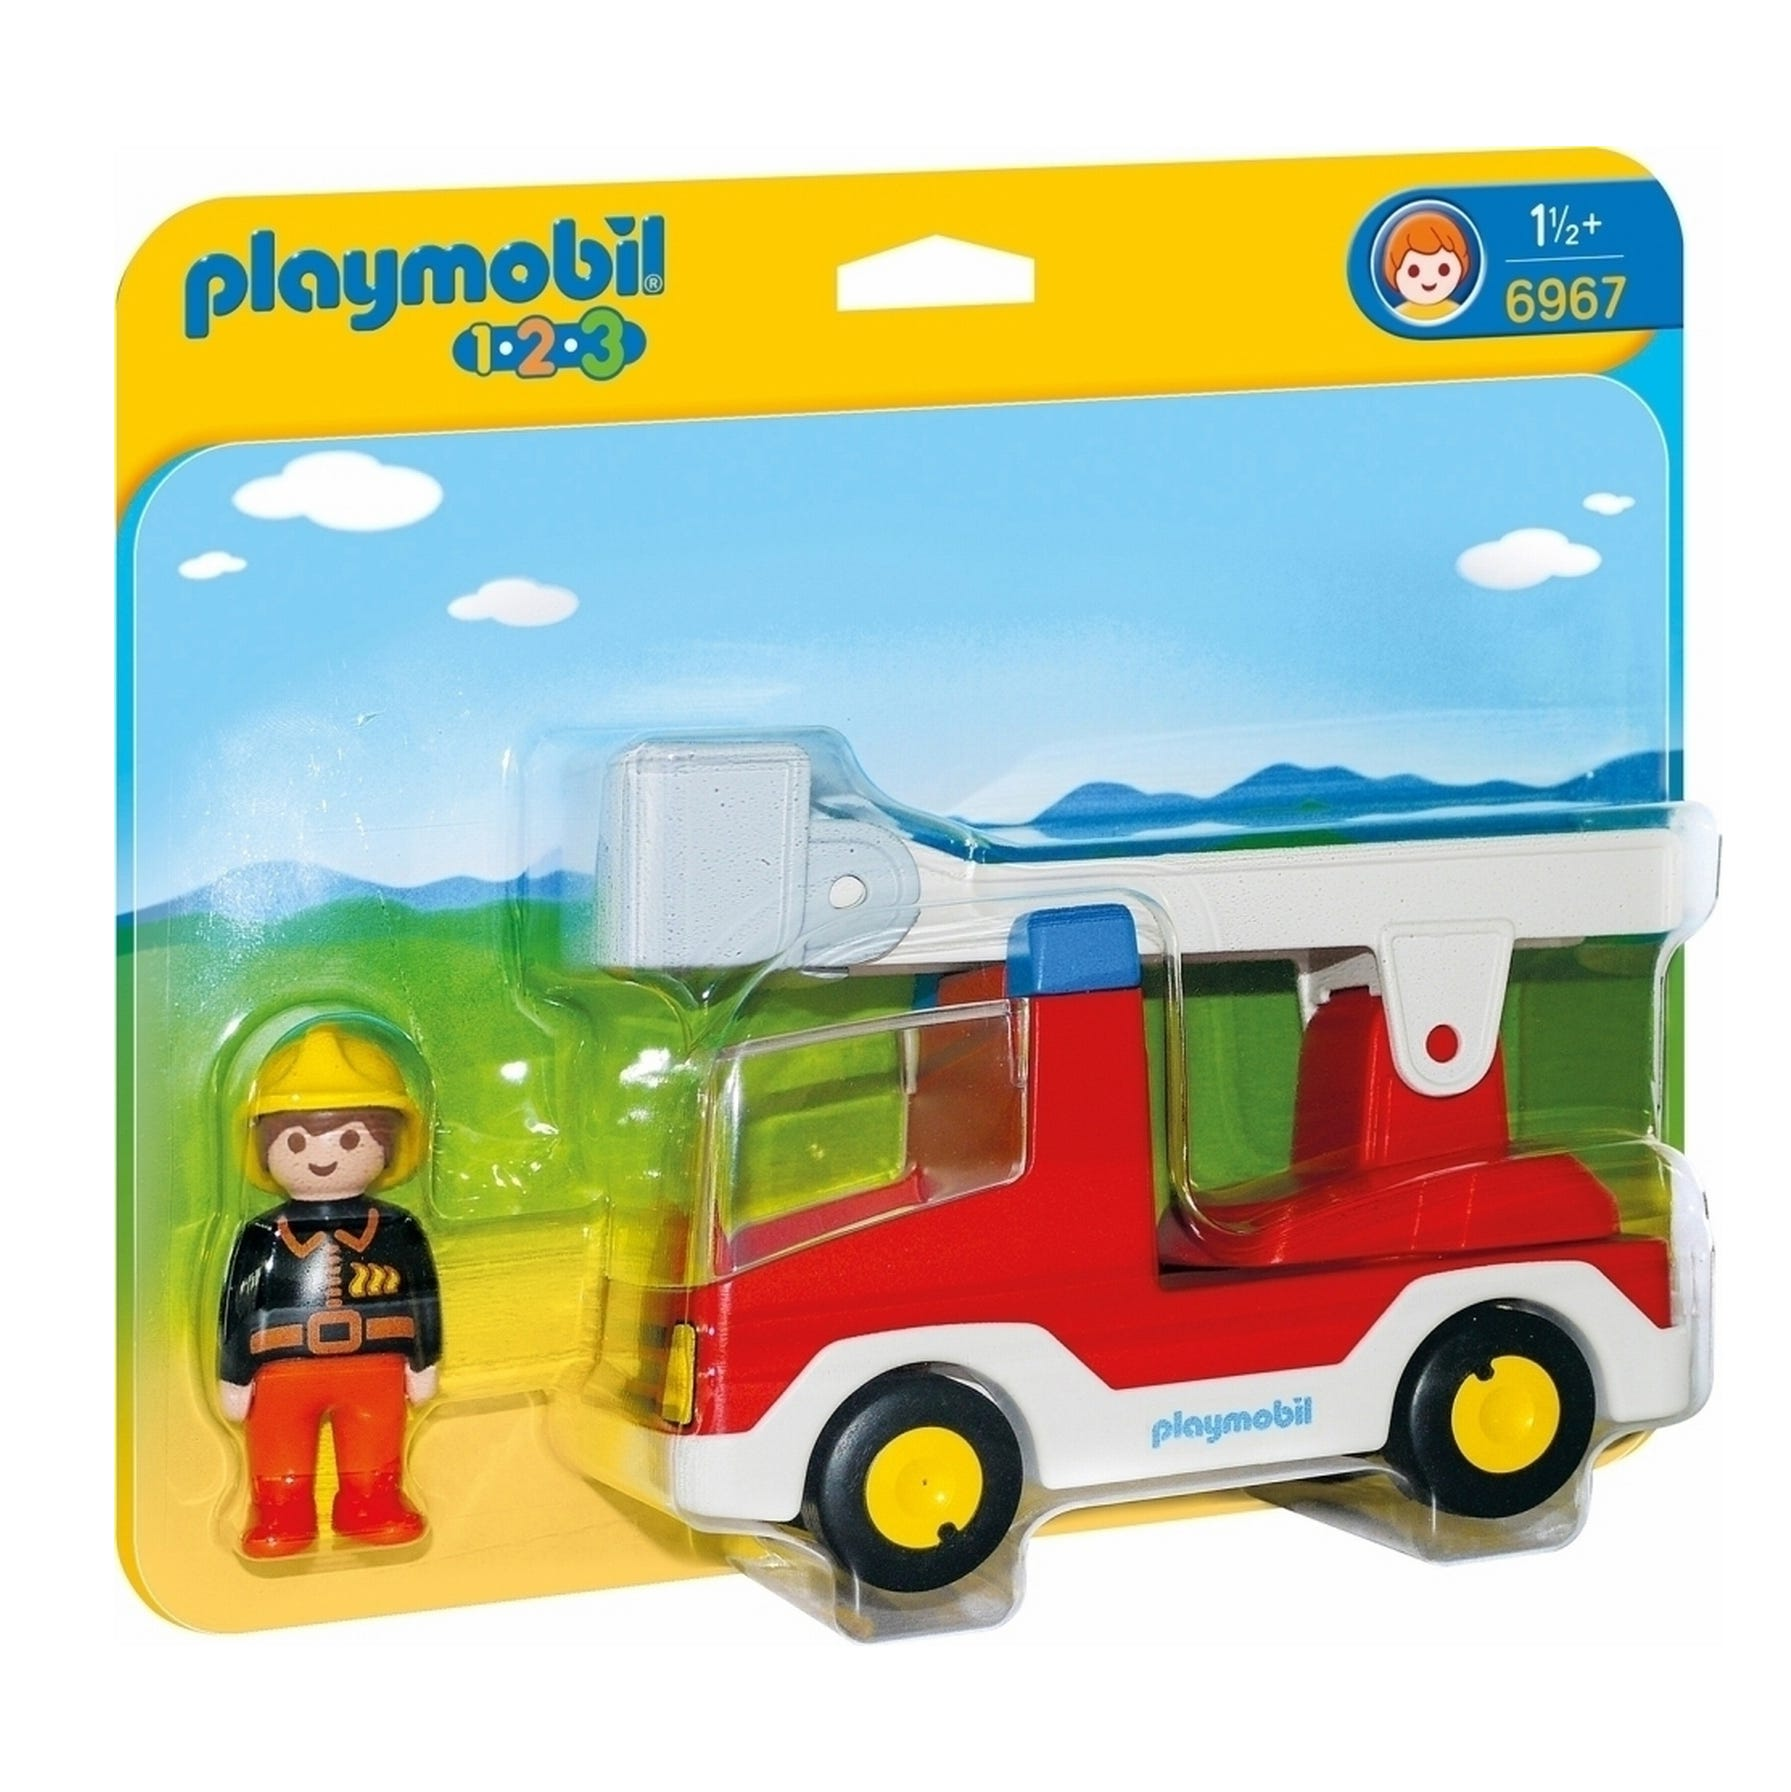 Playmobil 123 Ladder Unit Fire Truck 6967